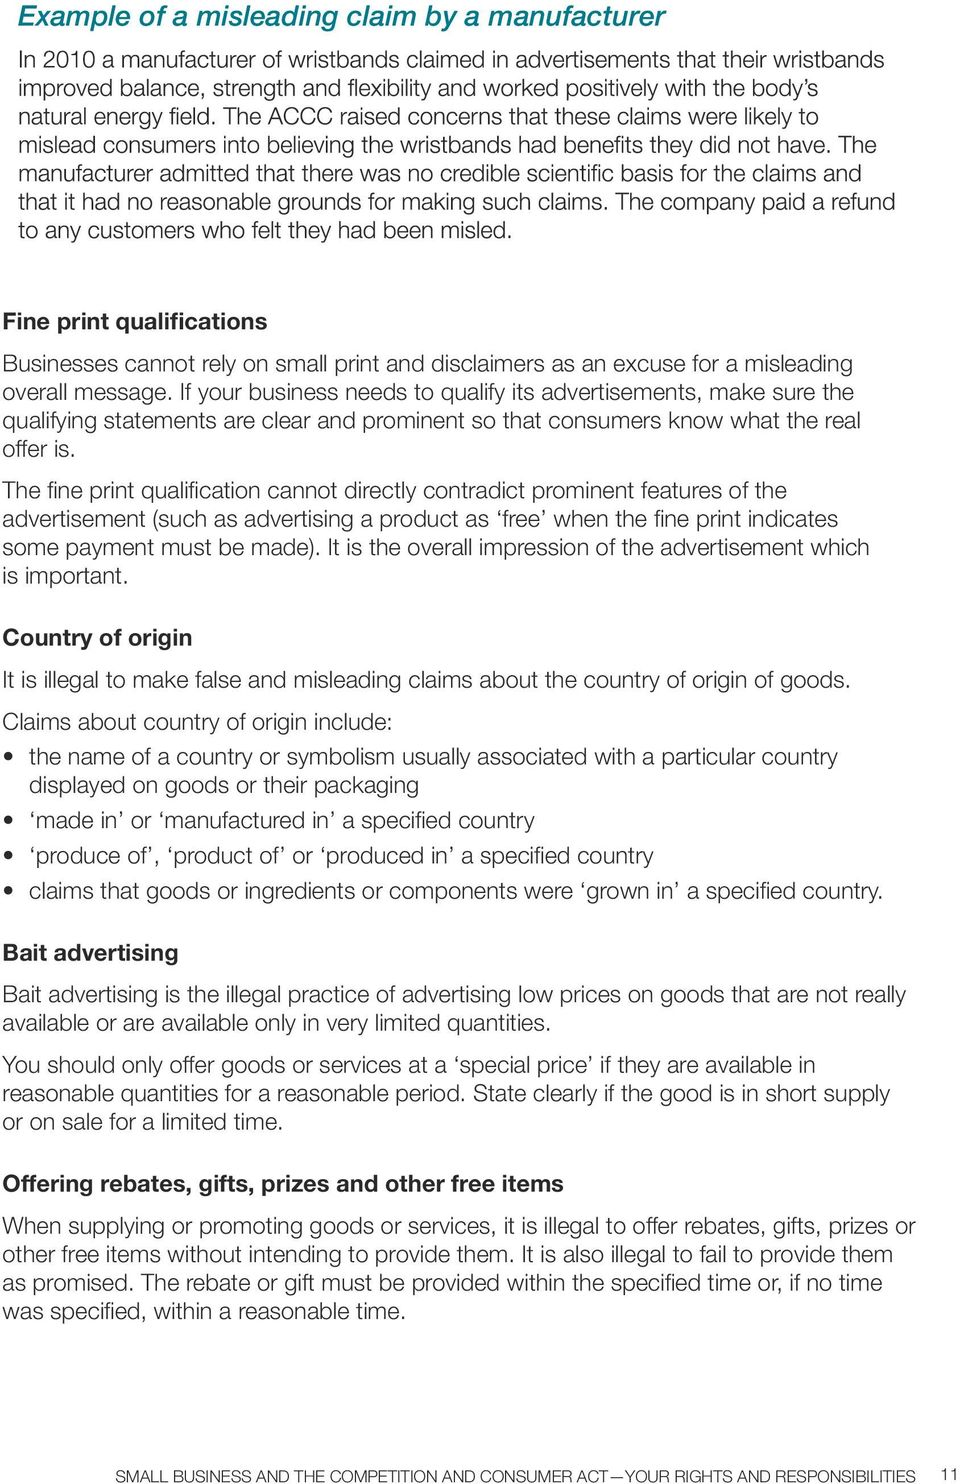 The fine print qualification cannot directly contradict prominent features of the advertisement (such as advertising a product as free when the fine print indicates some payment must be made).